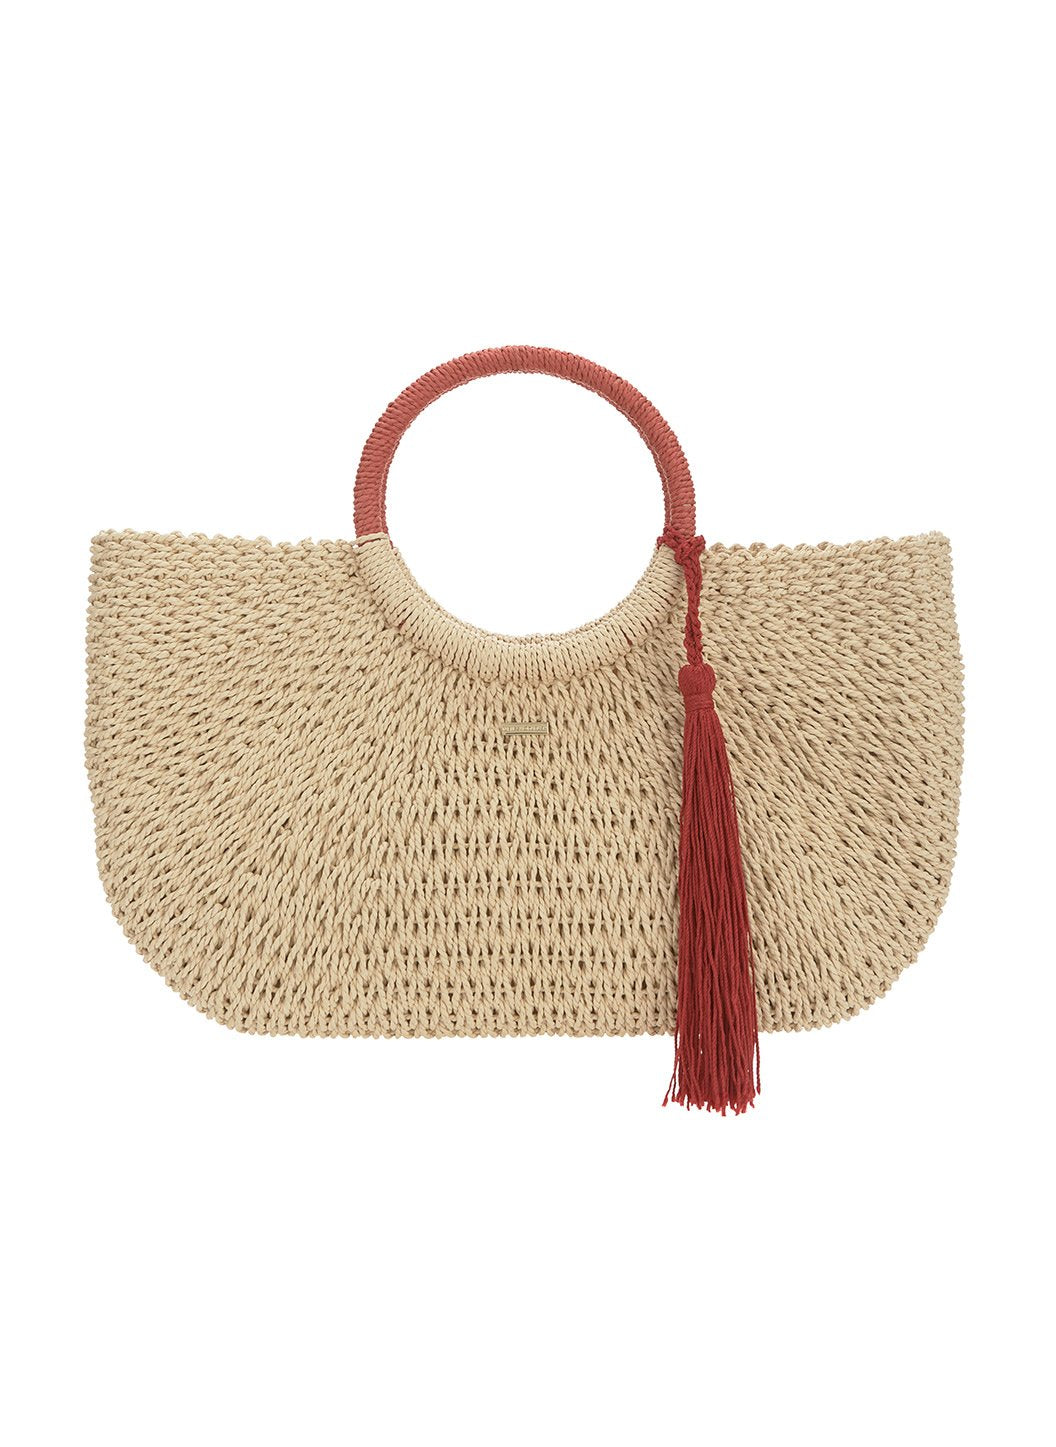 sorrento woven basket bag natural cinnamon 2019